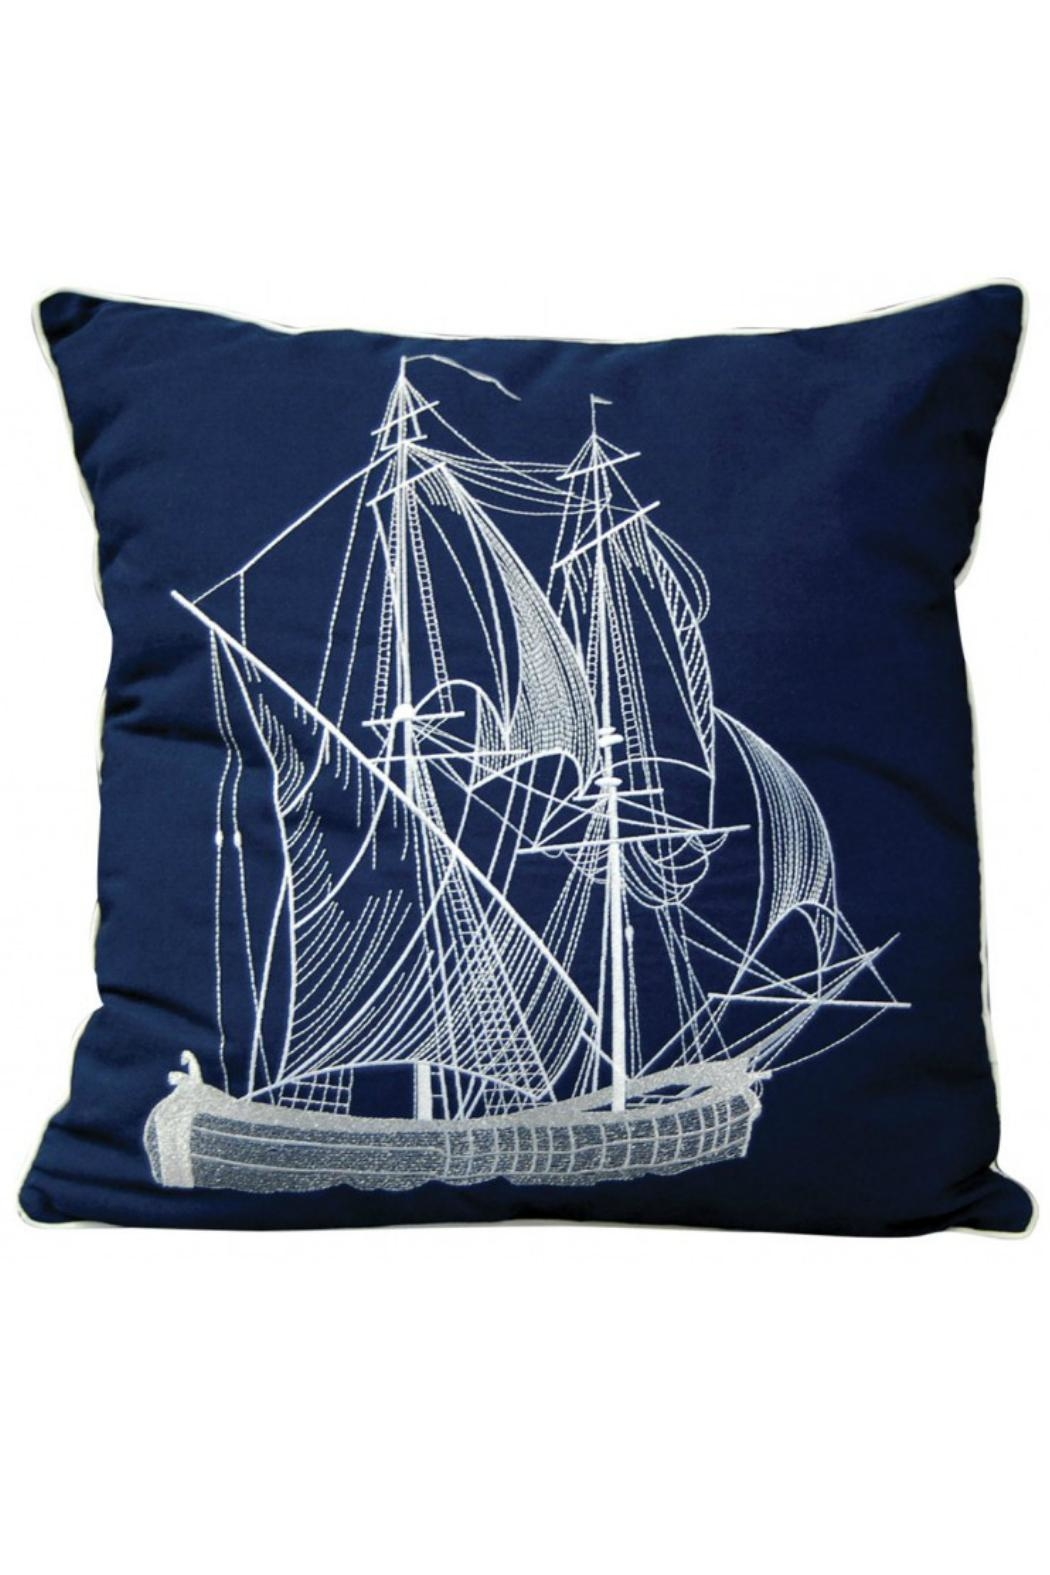 Rightside Design Vintageship Sunbrella Pillow - Main Image